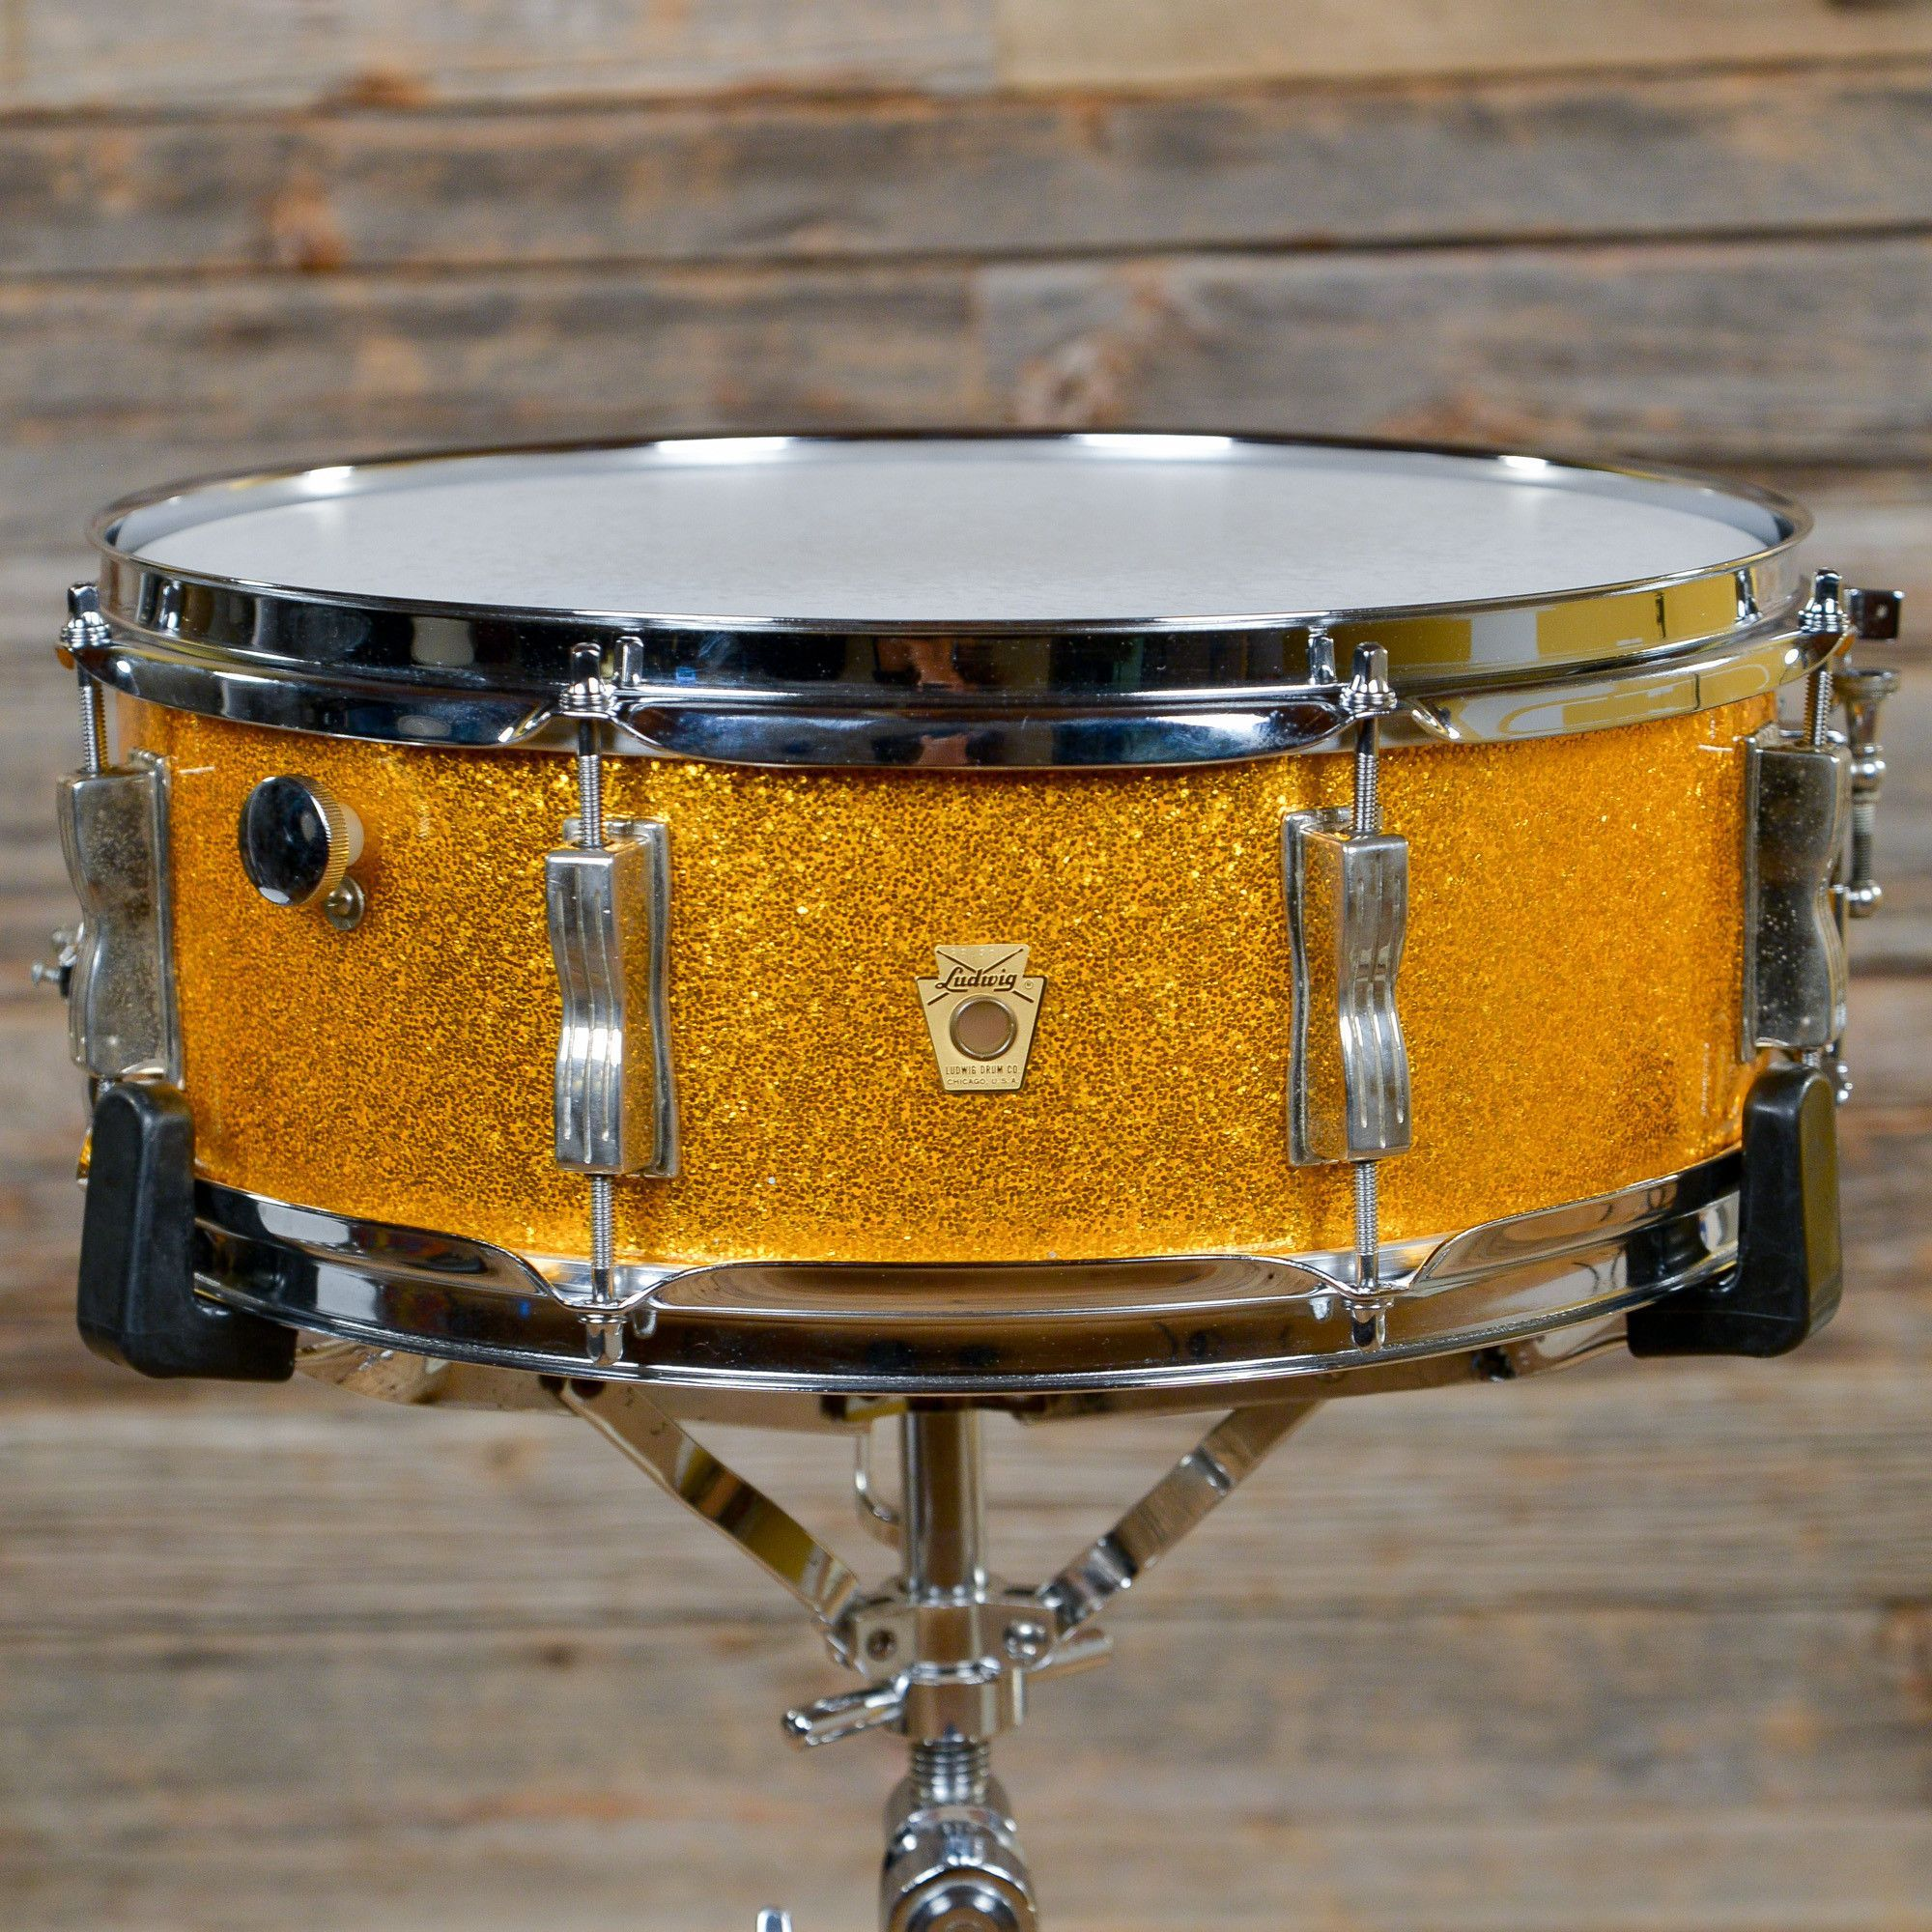 ludwig 5x14 jazz festival snare drum gold sparkle late 60s drums pinterest jazz festival. Black Bedroom Furniture Sets. Home Design Ideas